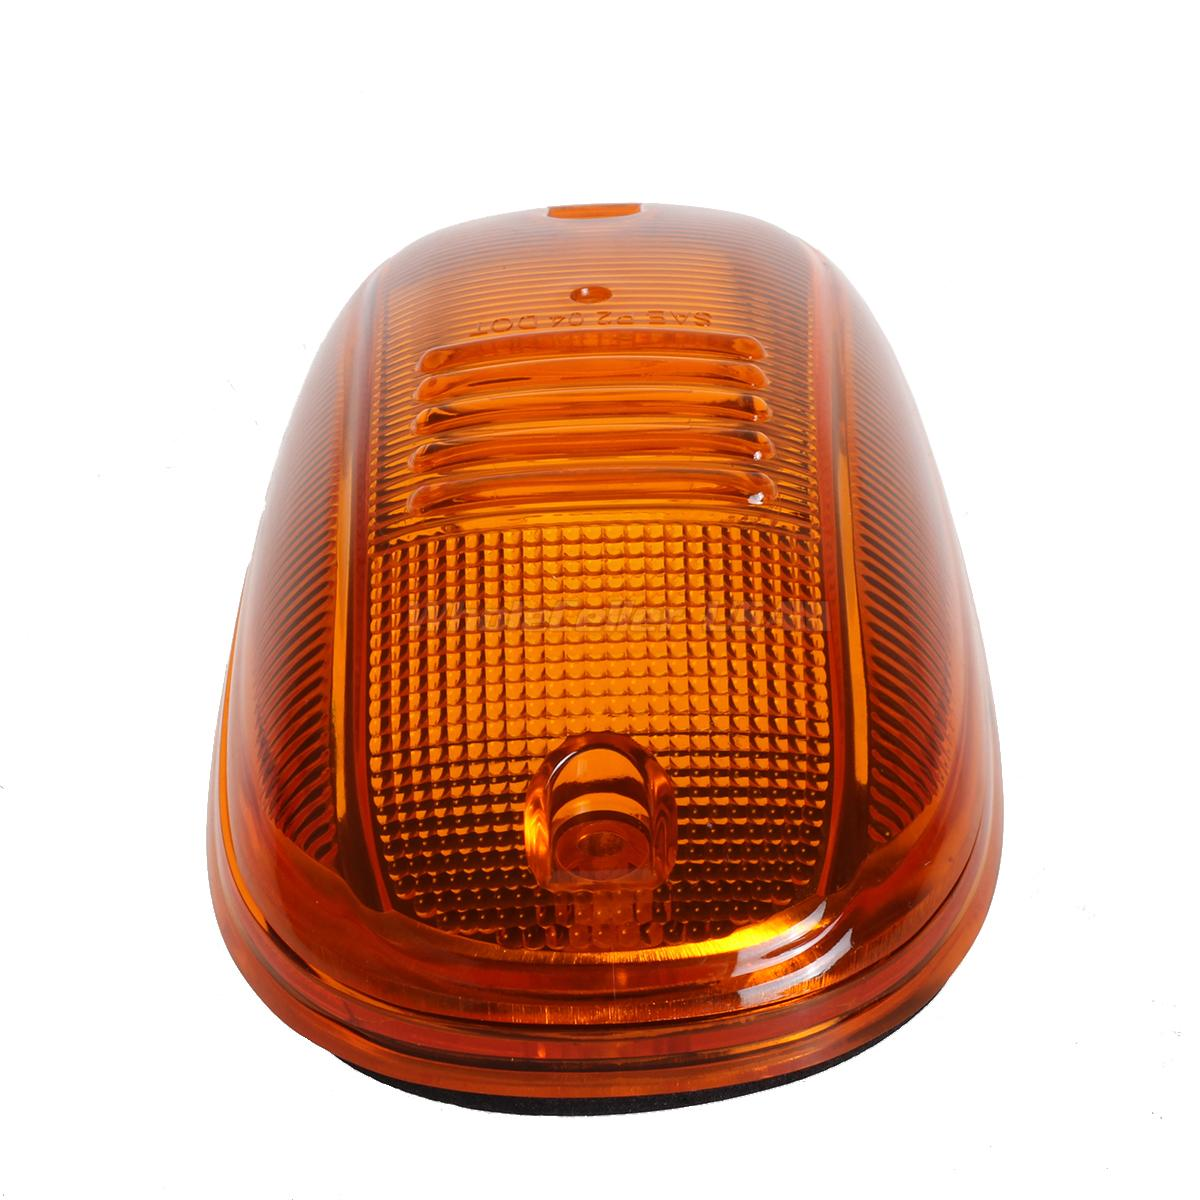 5  white led 5050 168 amber 264146am roof cab marker lights for 03 16 dodge ram Ford 7 3 Wiring Harness 7.3 Powerstroke Engine Wiring Harness